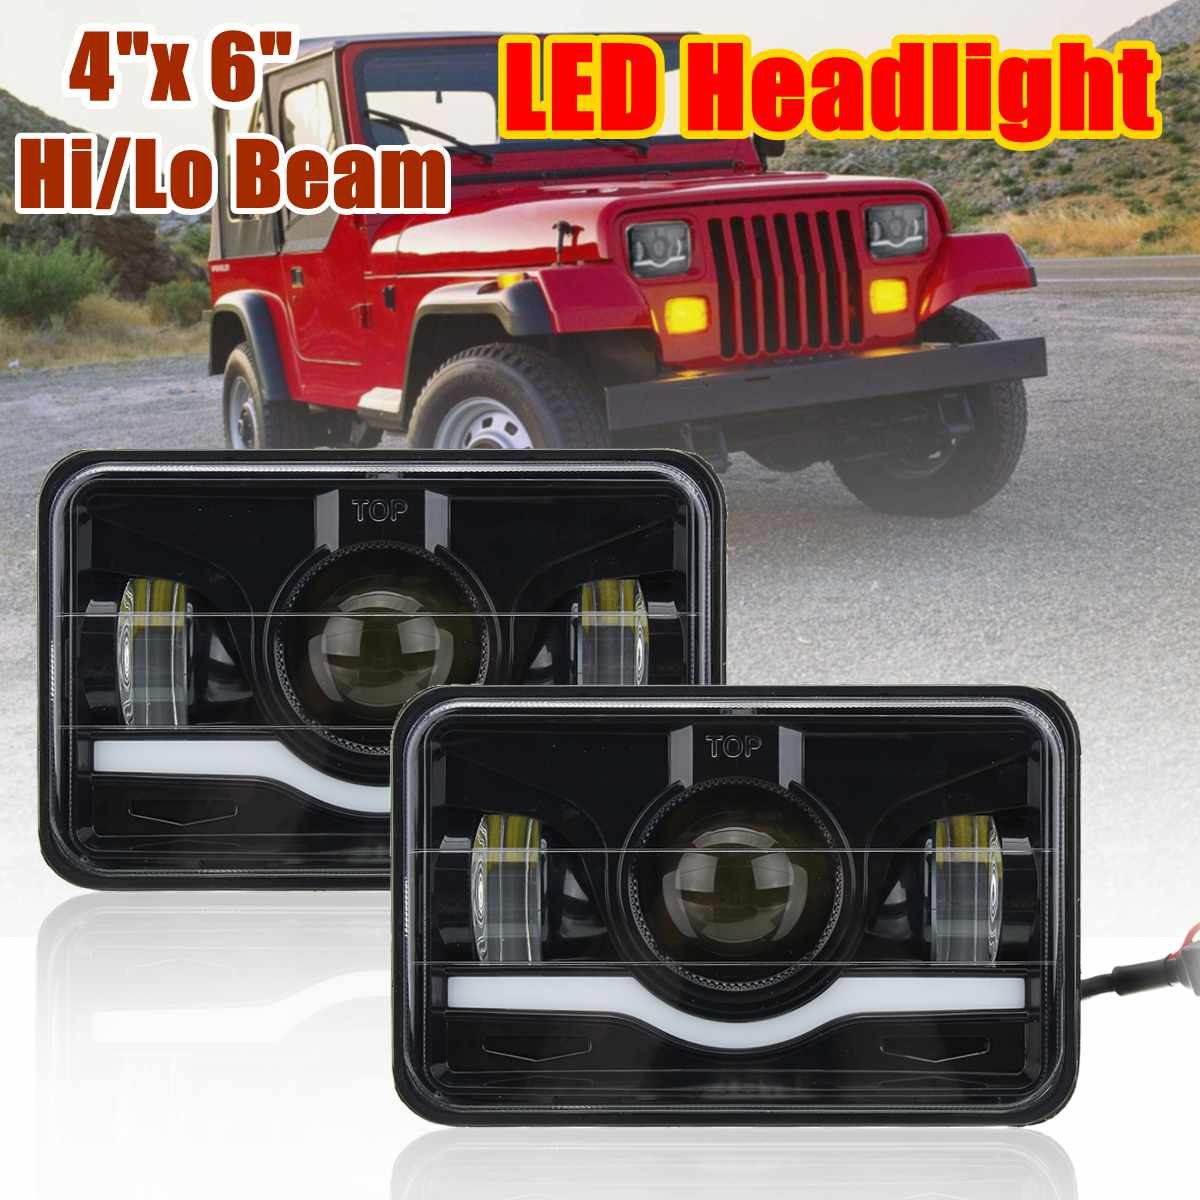 2pcs 4 X 6 LED Headlight Red & White DRL Hi/Lo Beam Truck Replacement Lamp For Jeep